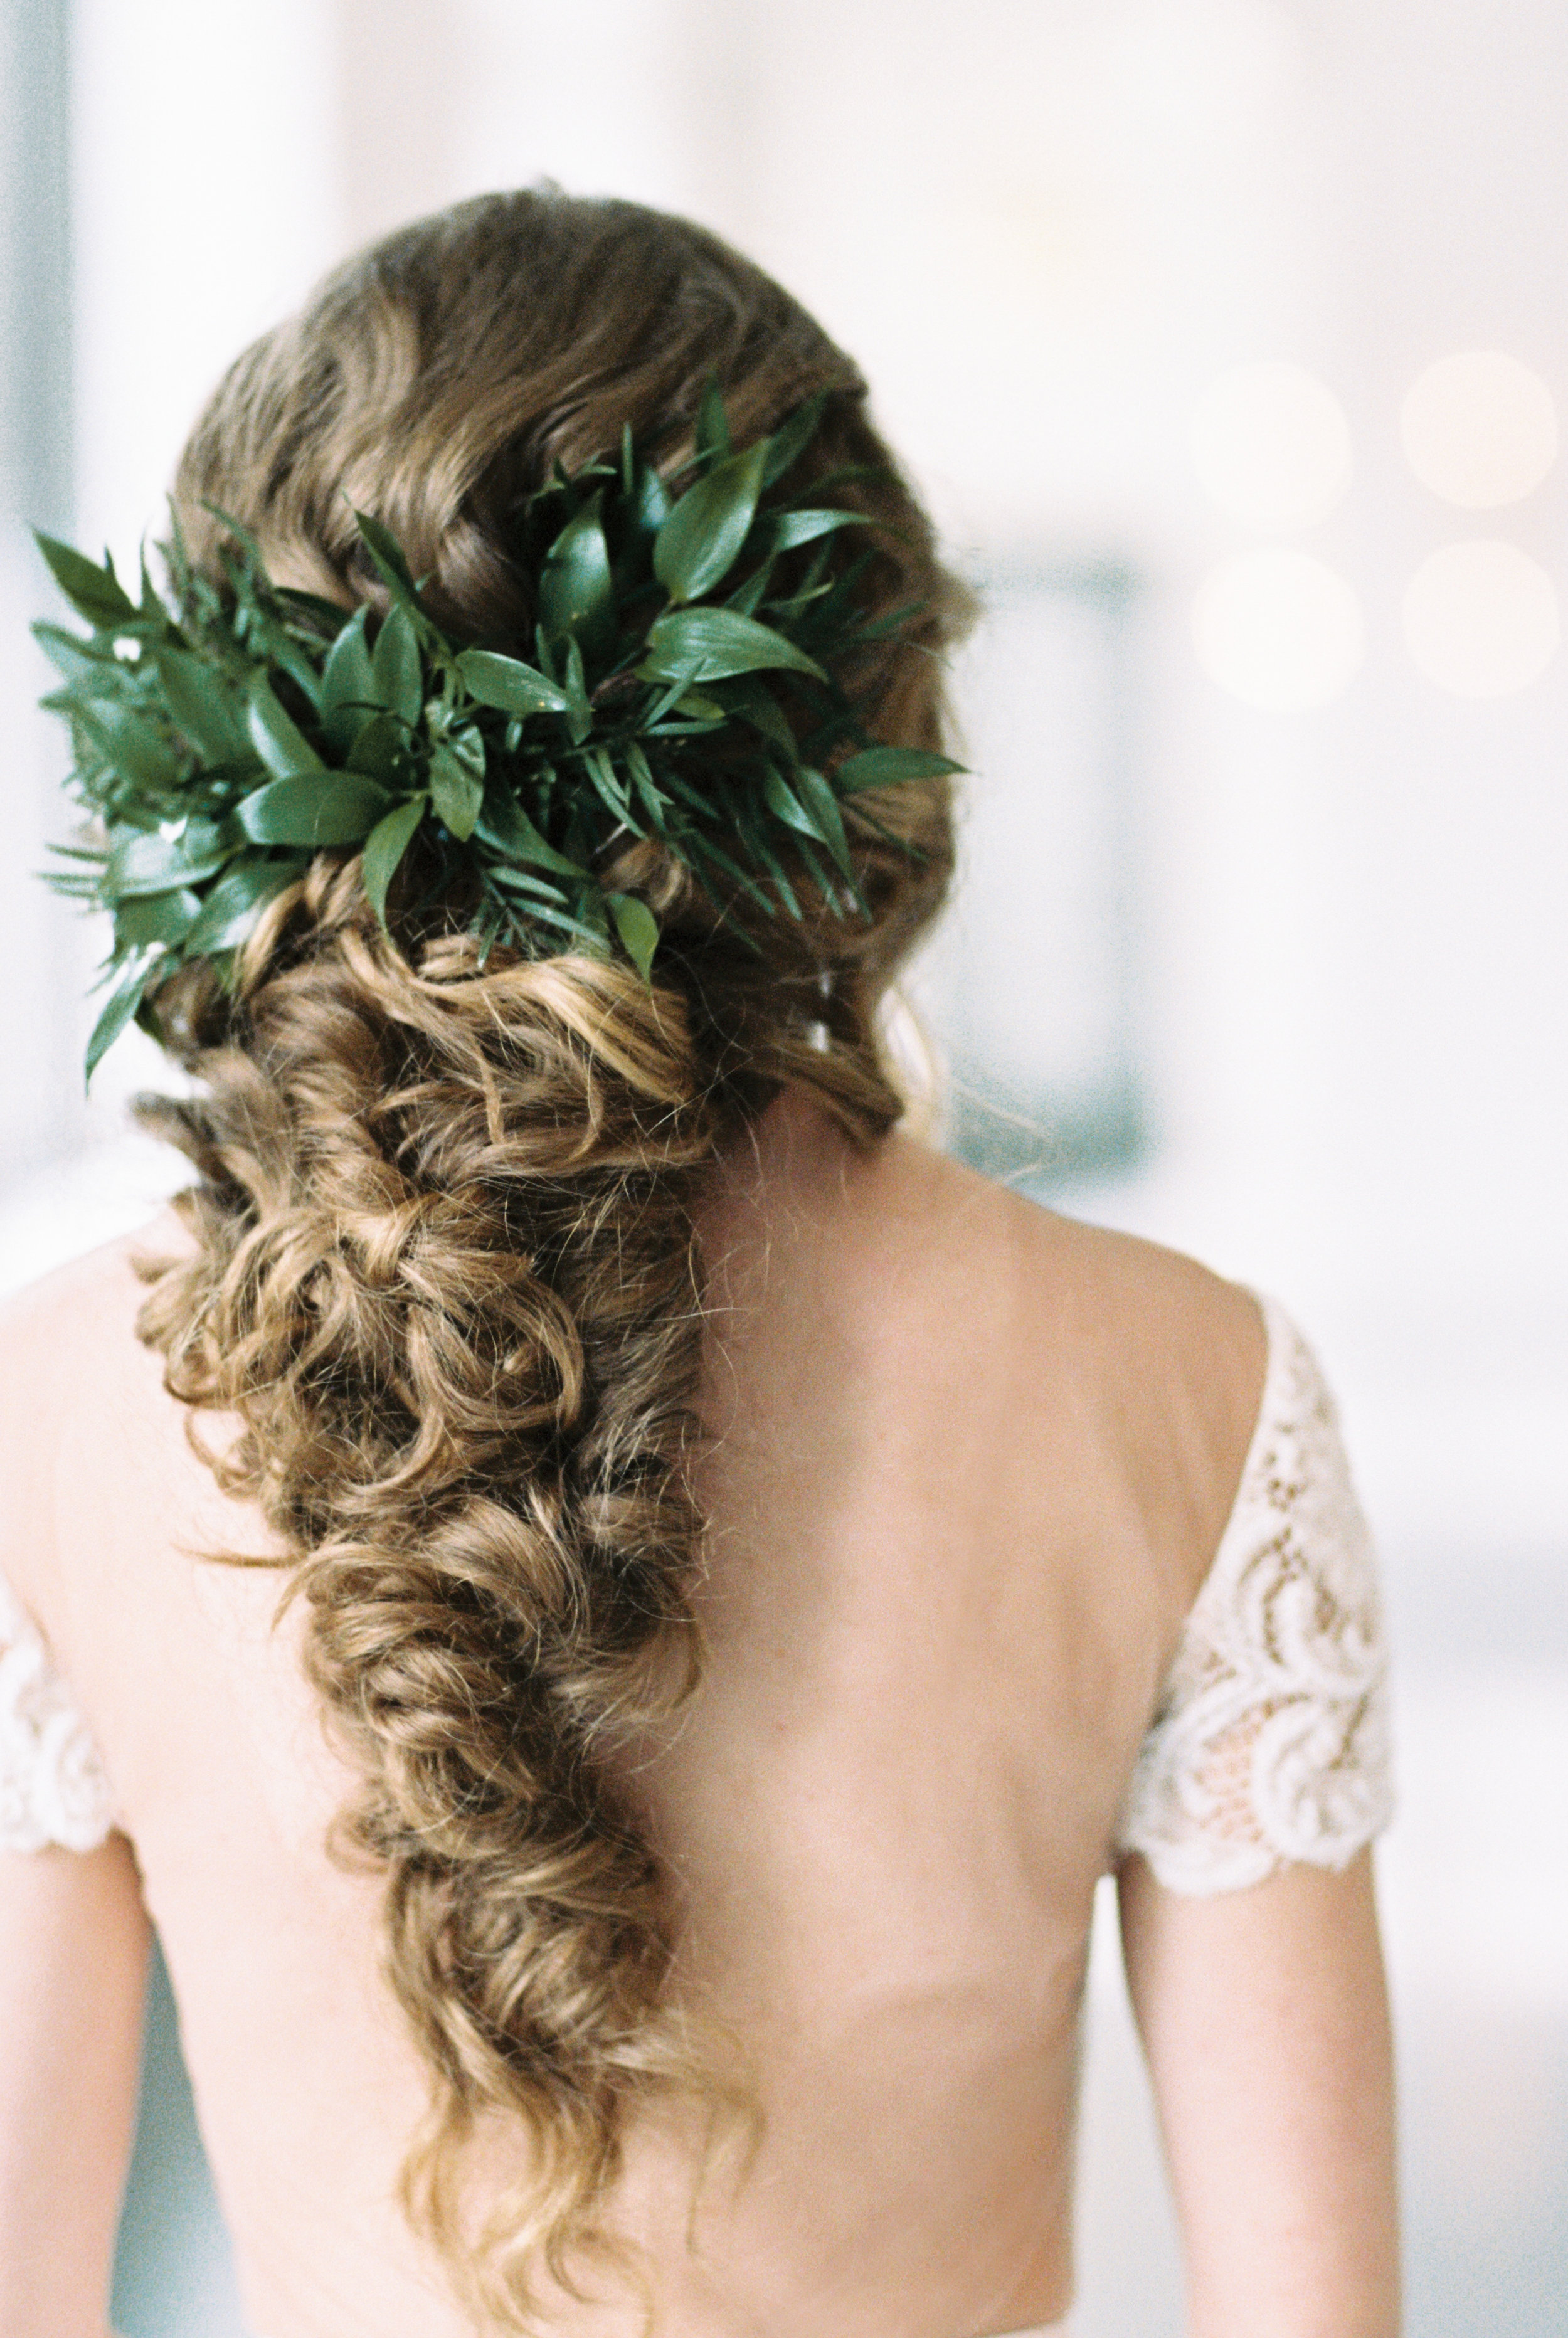 Boho wedding hair with greenery at modern wedding venue with lots of natural light, and beautiful greenery for this Chicago wedding styled shoot. Find more wedding inspiration at chitheewed.com!